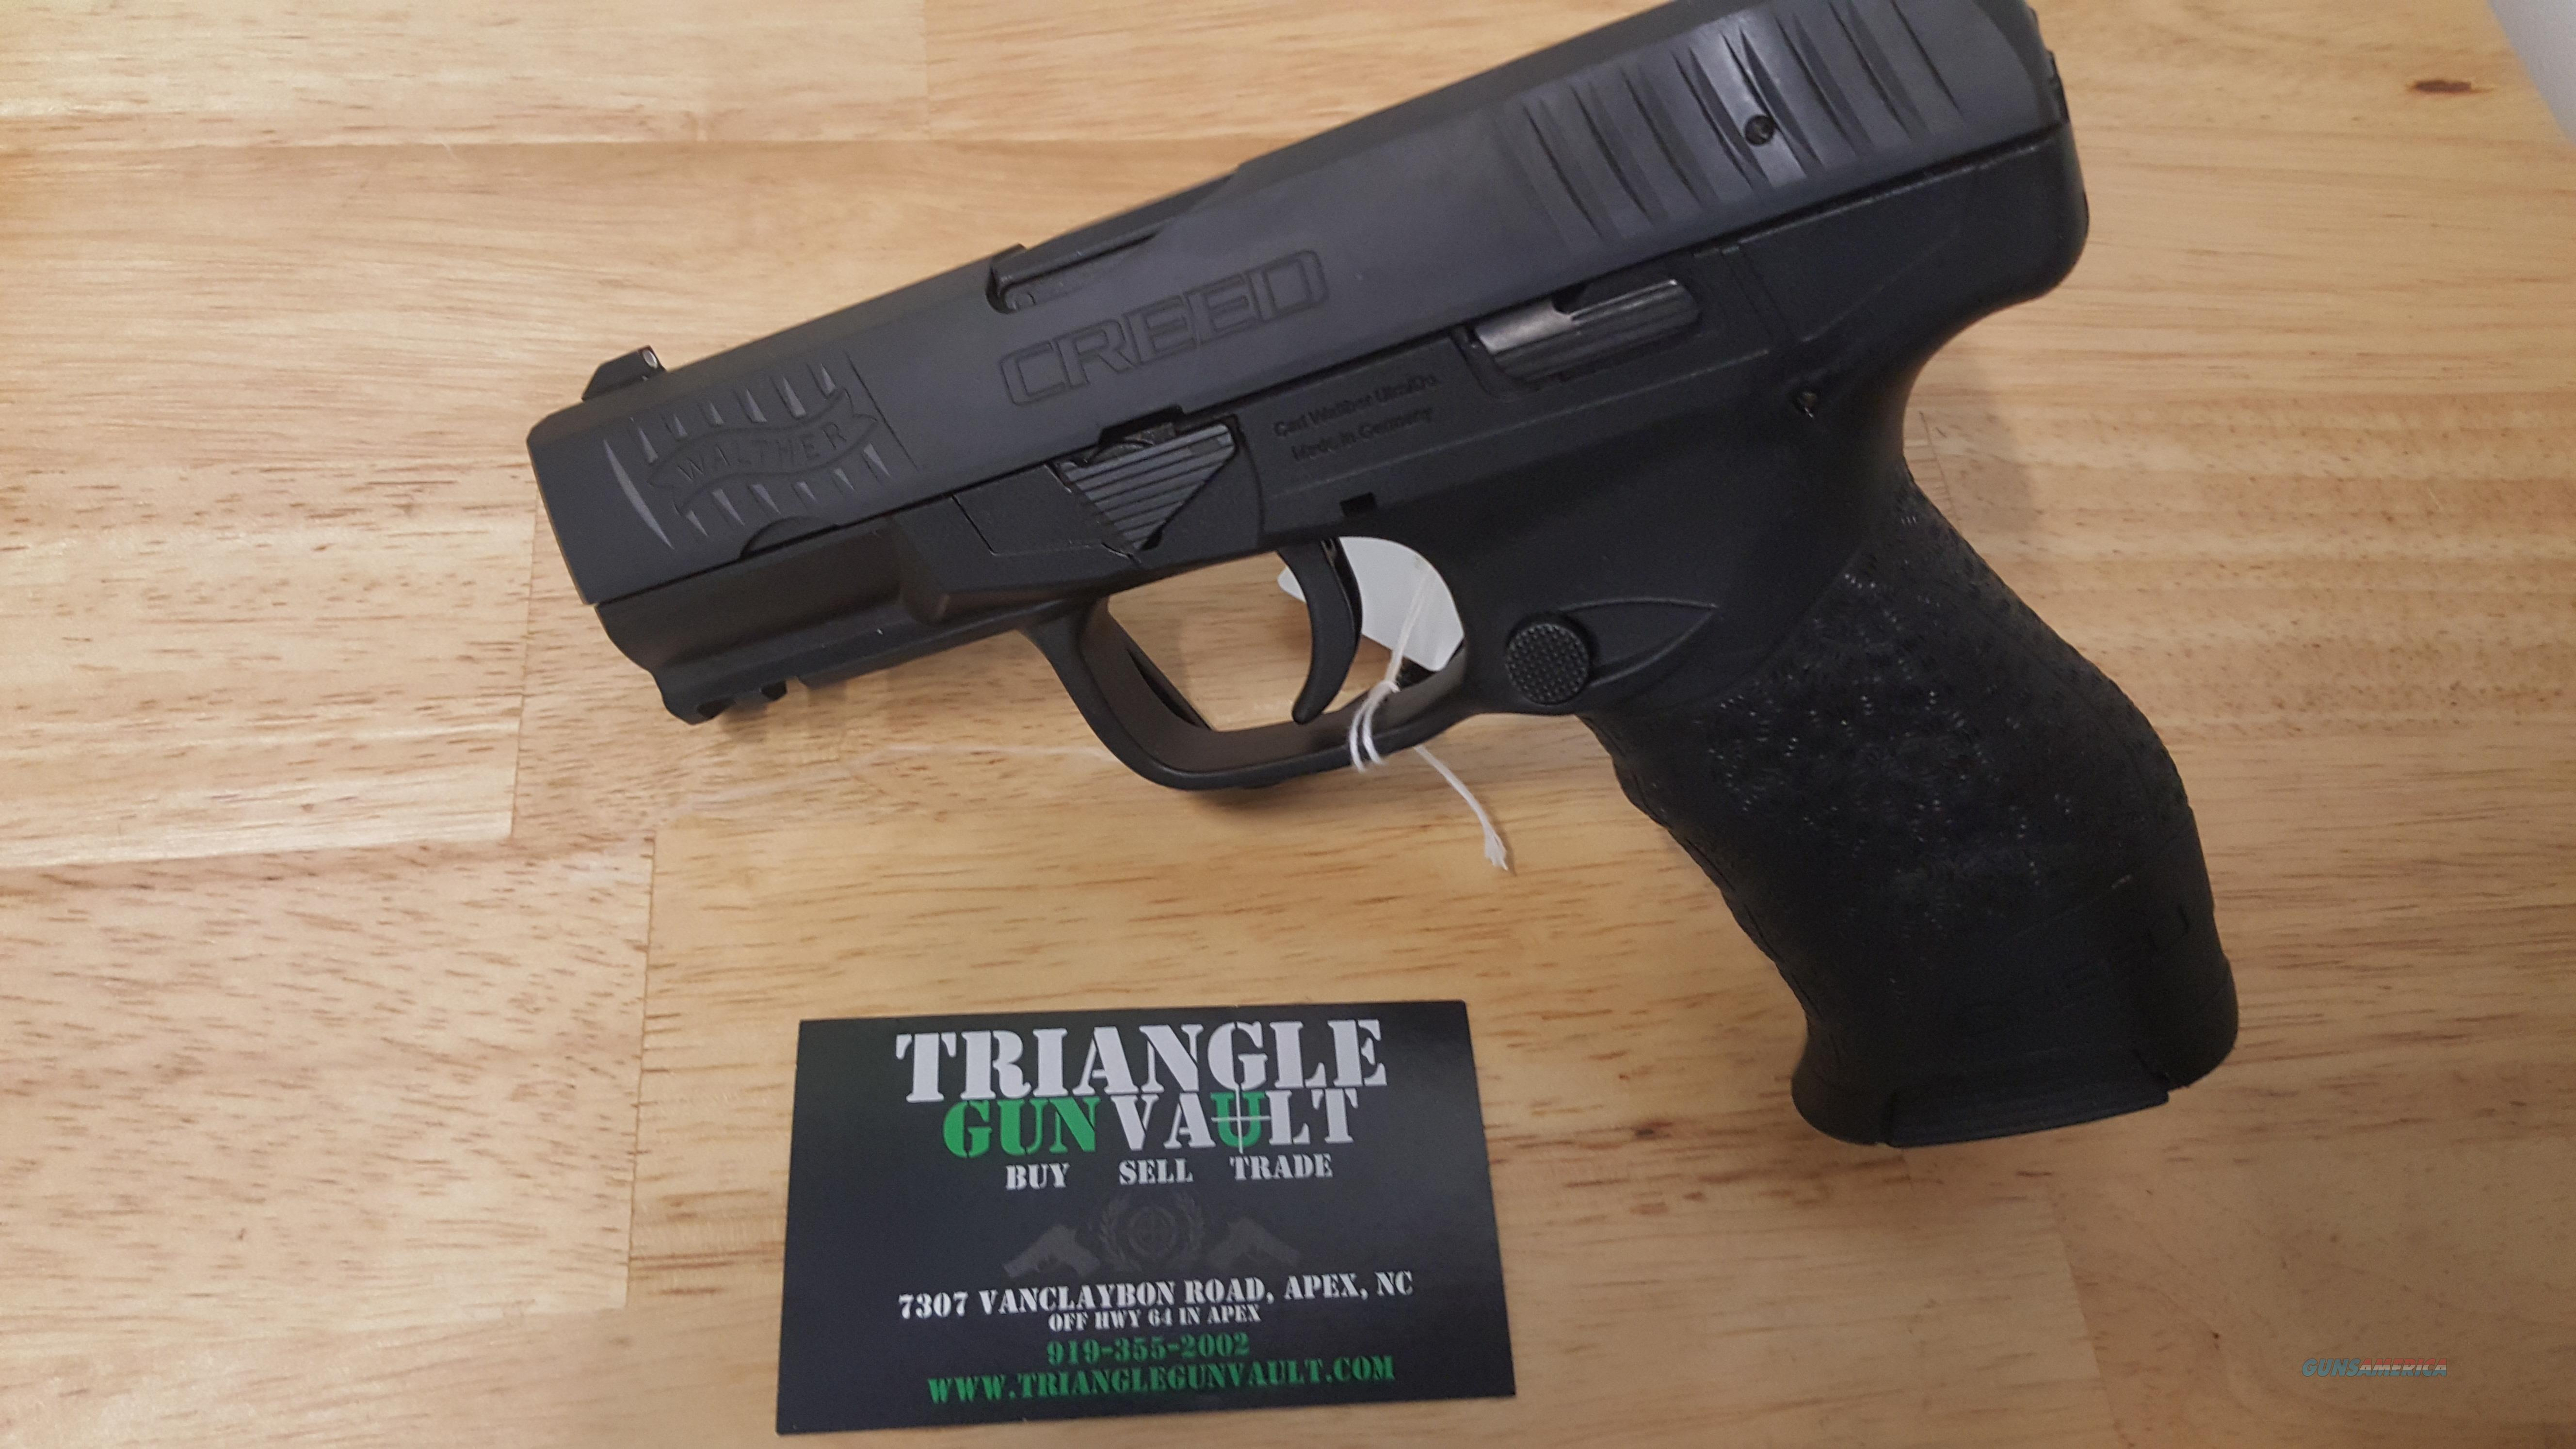 Walther Creed 9mm Pistol W/Extra Mag  Guns > Pistols > Walther Pistols > Post WWII > Creed